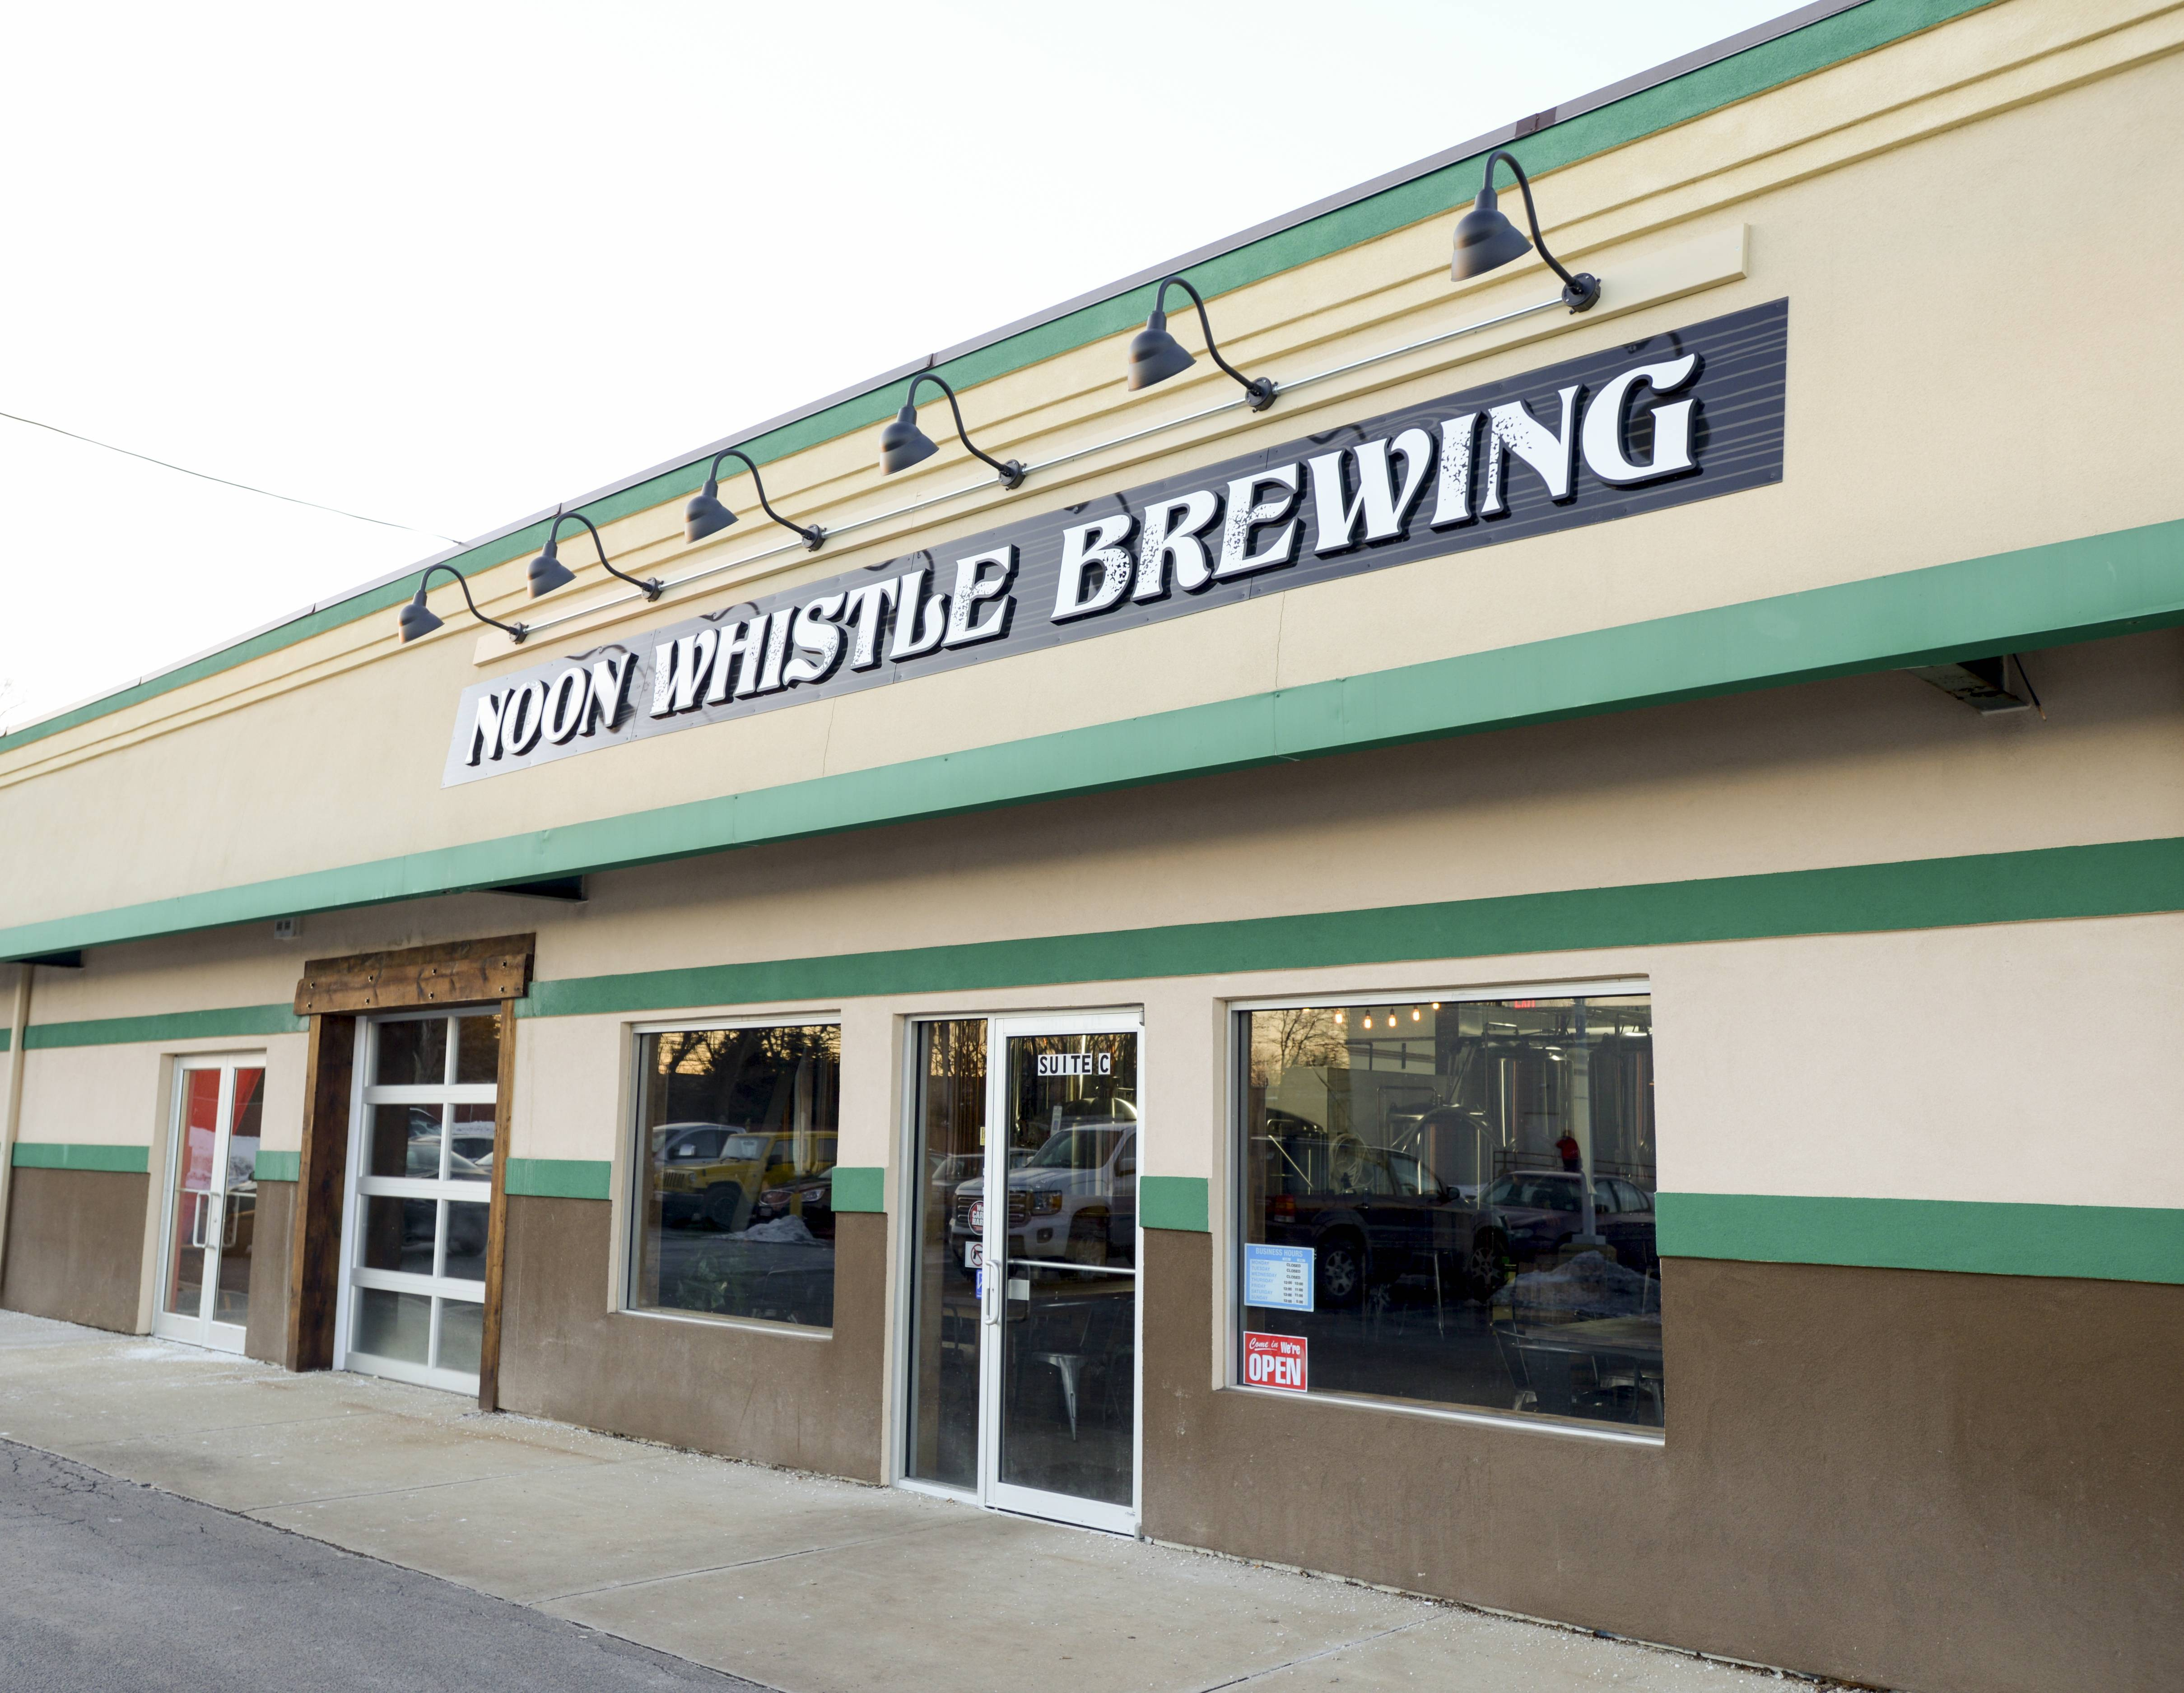 Noon Whistle Brewing in Lombard is outgrowing its production facility and tap house on Roosevelt Road in Lombard and wants to add a second location in Naperville.